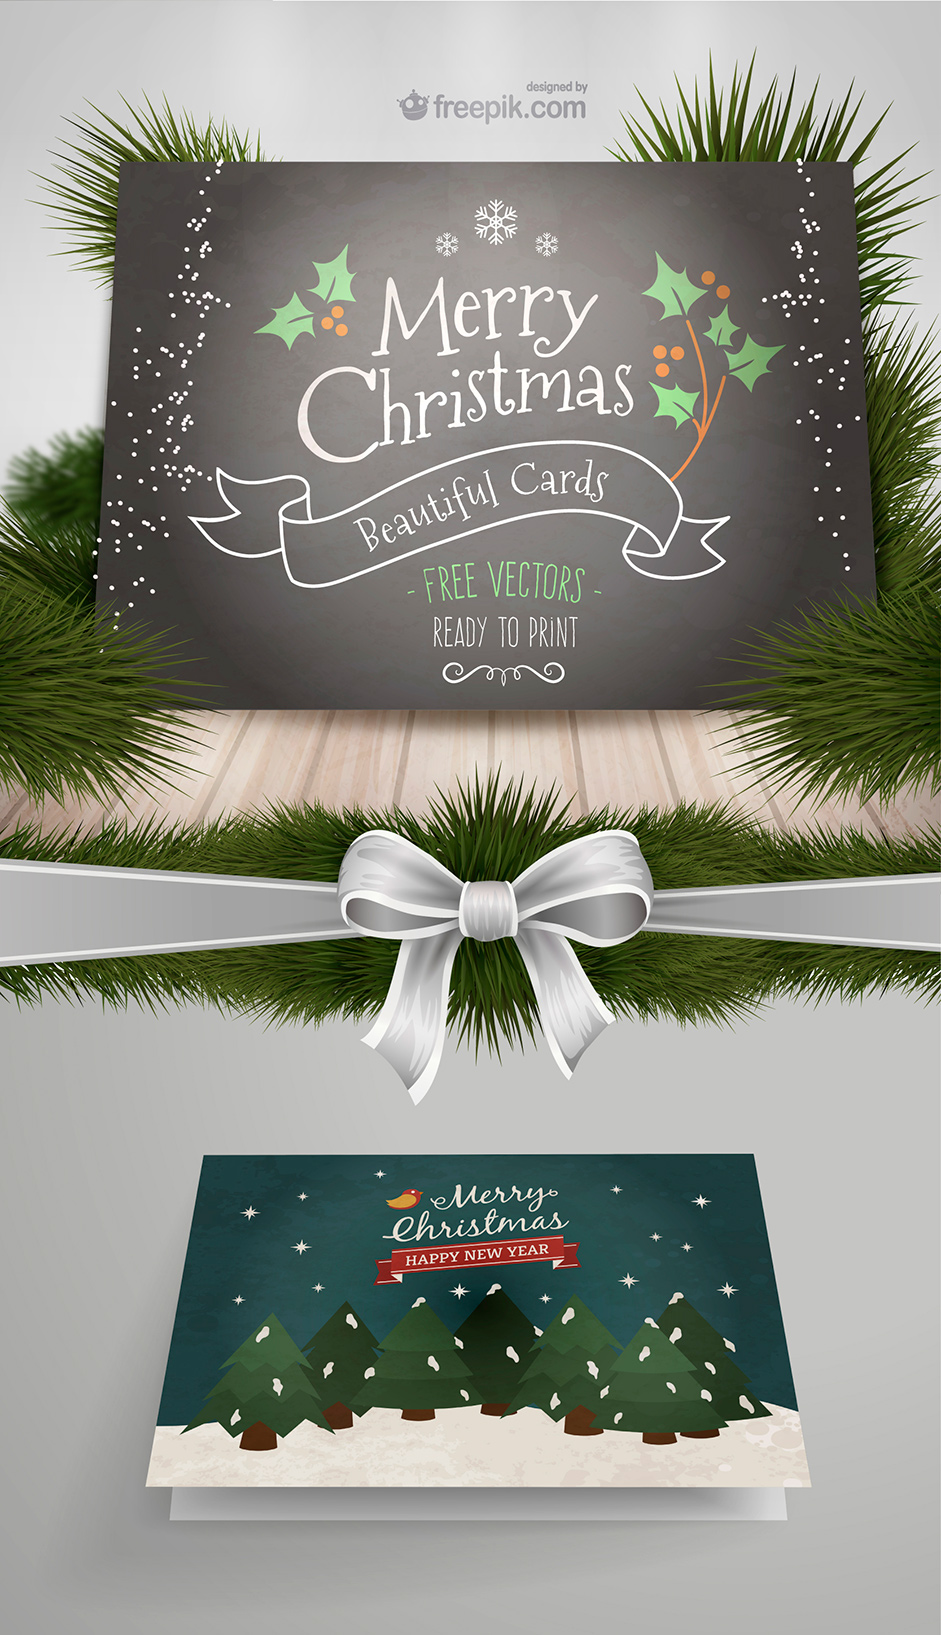 Email Christmas Cards.10 New Xmas Cards From Freepik And More Free Resources For